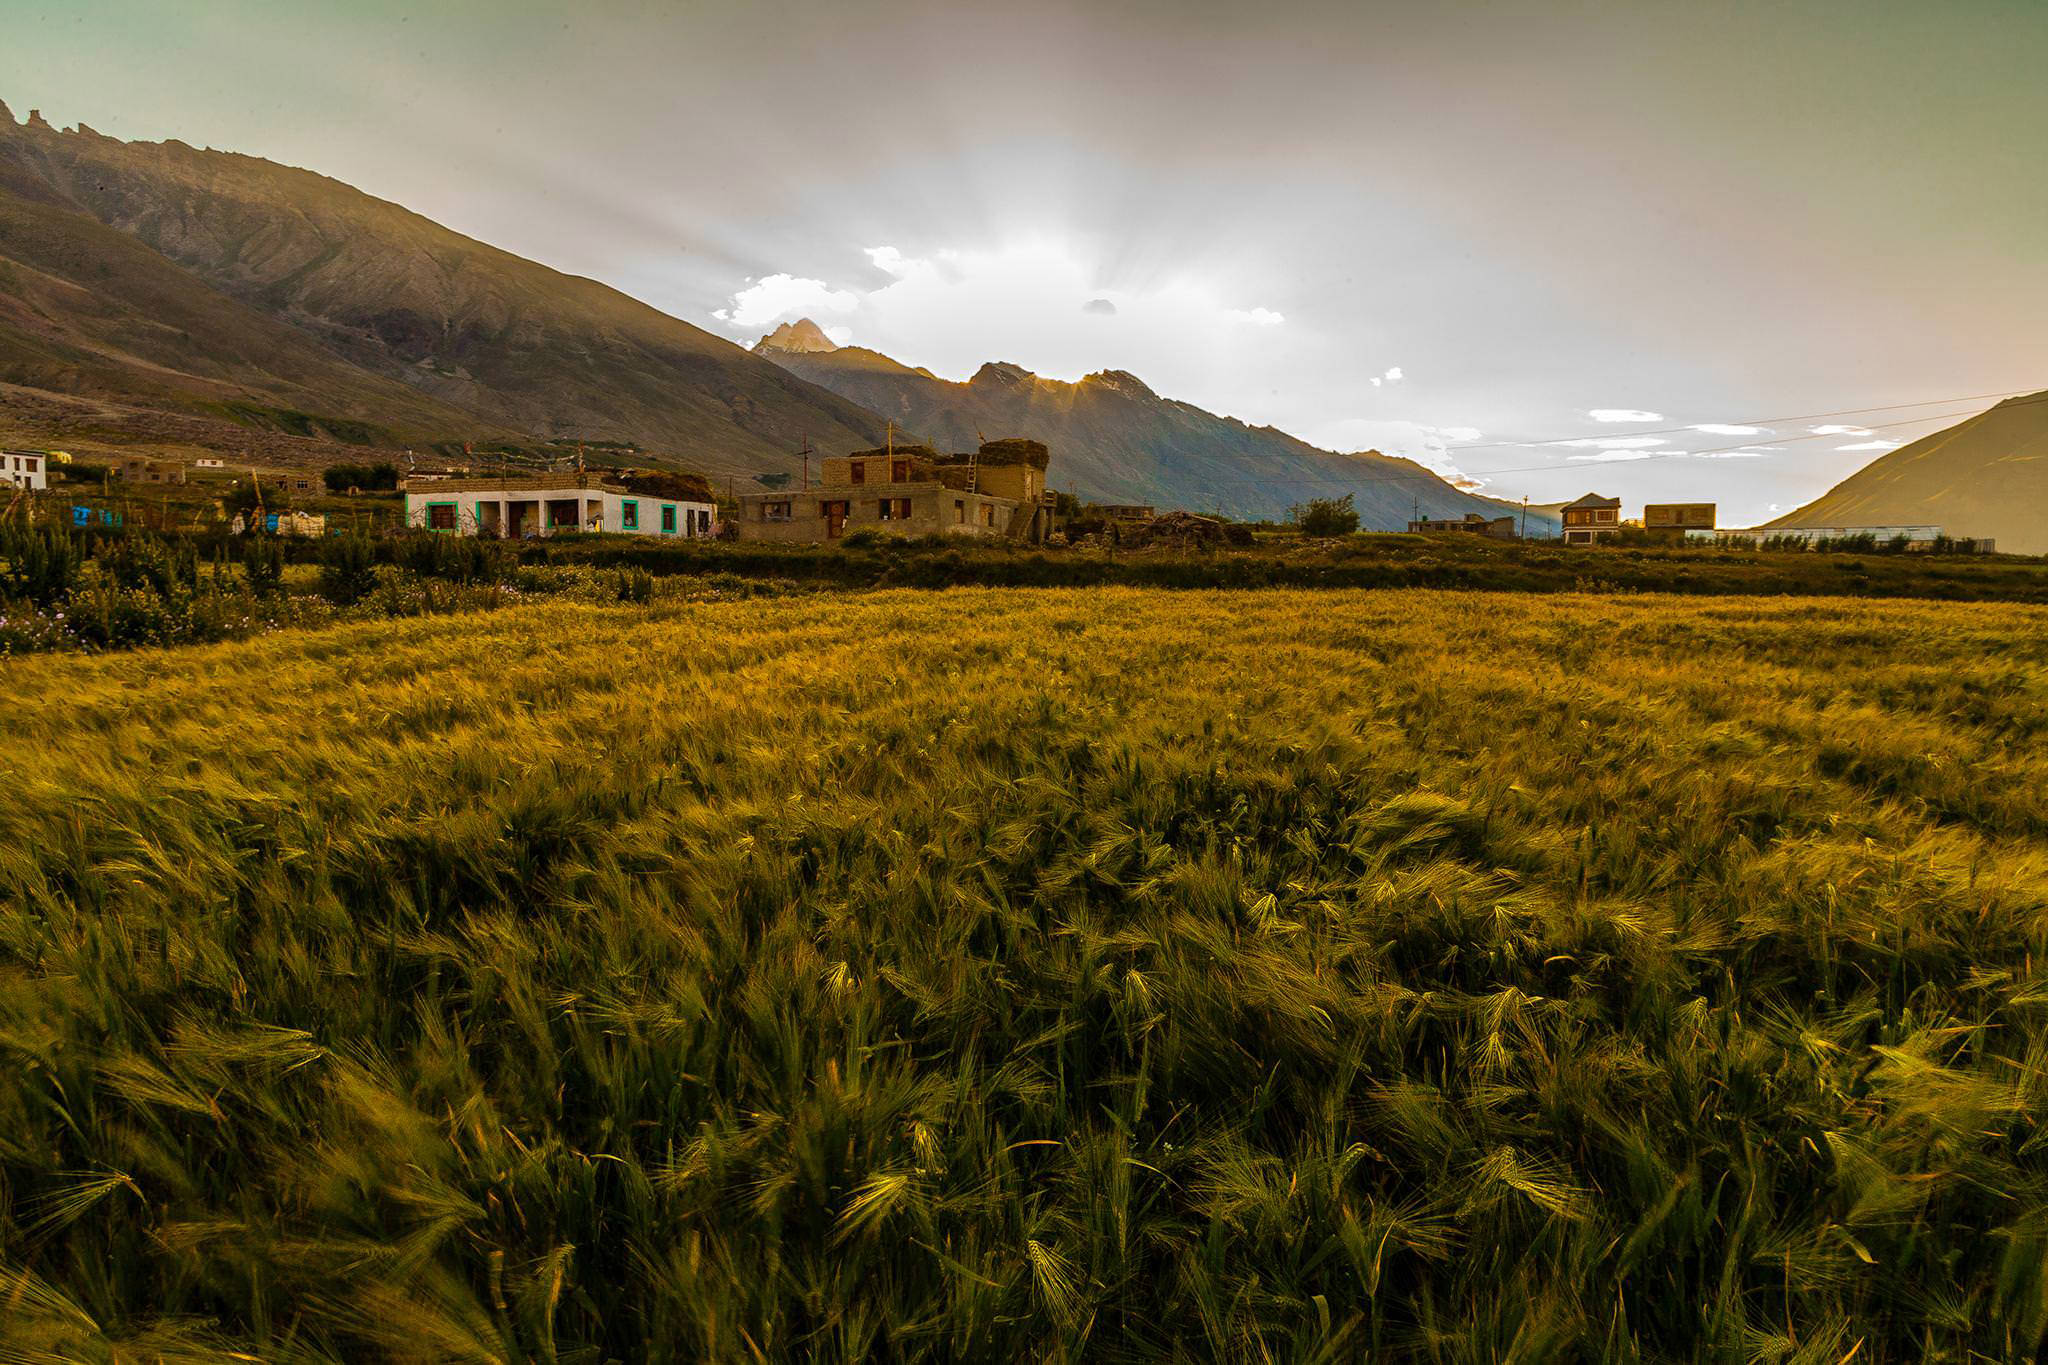 Grass at Padum (Zanskar valley)